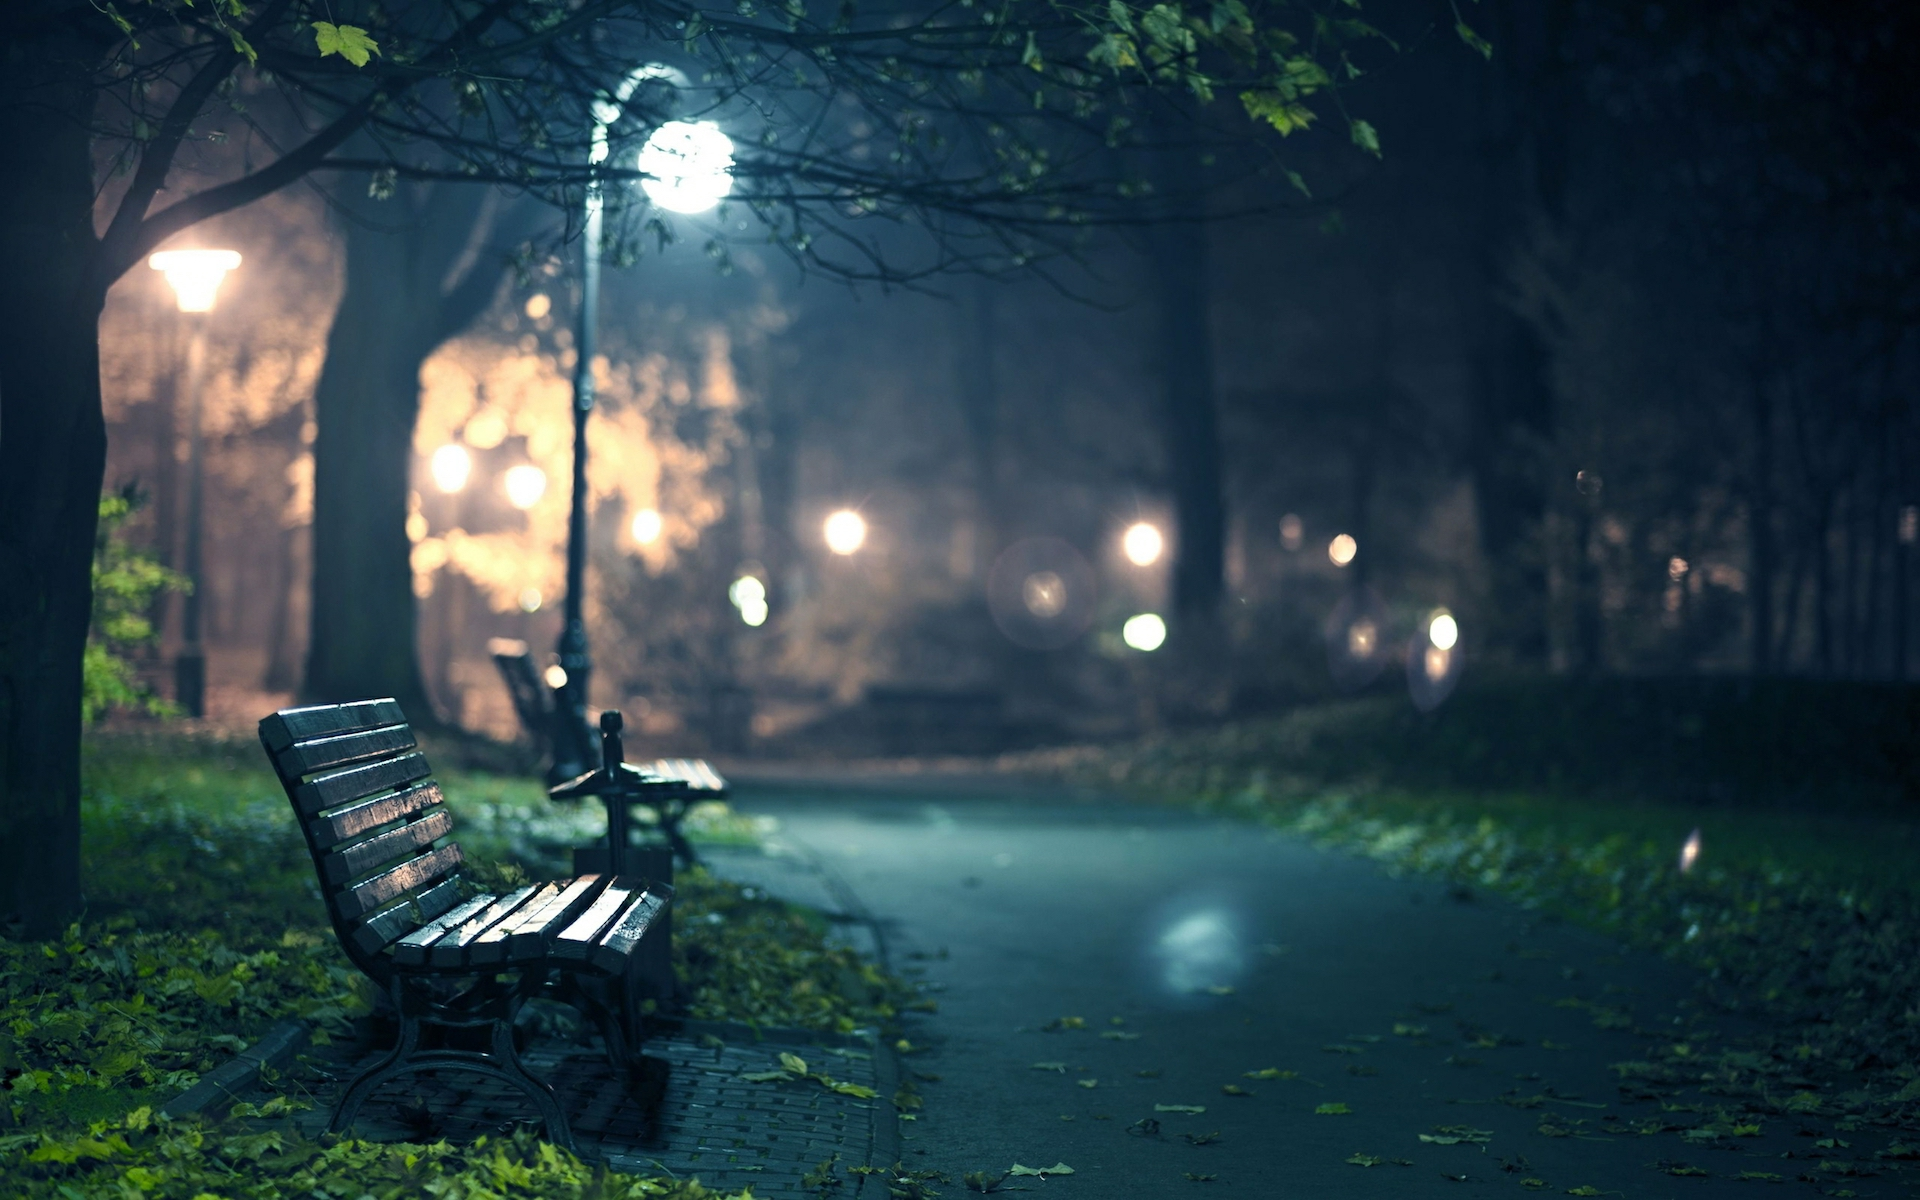 Free Download Computer Wallpaper Hd For Desktop - Park Bench At Night , HD Wallpaper & Backgrounds